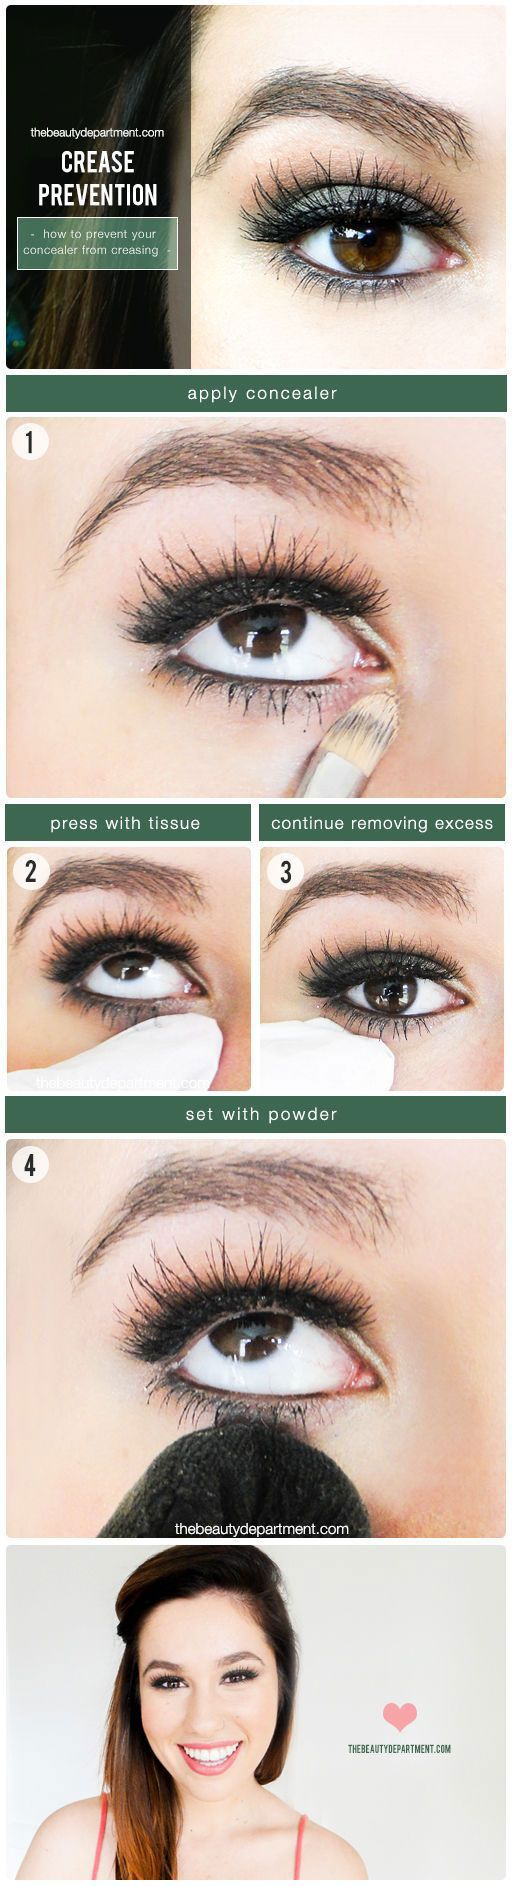 15 Easy Makeup Tips For Girls Who Don't Know How To Use Concealer Concealer seems like it should be super simple: dab a little bit on the pimples and blemishes you want to hide, blend it in, look <a class=